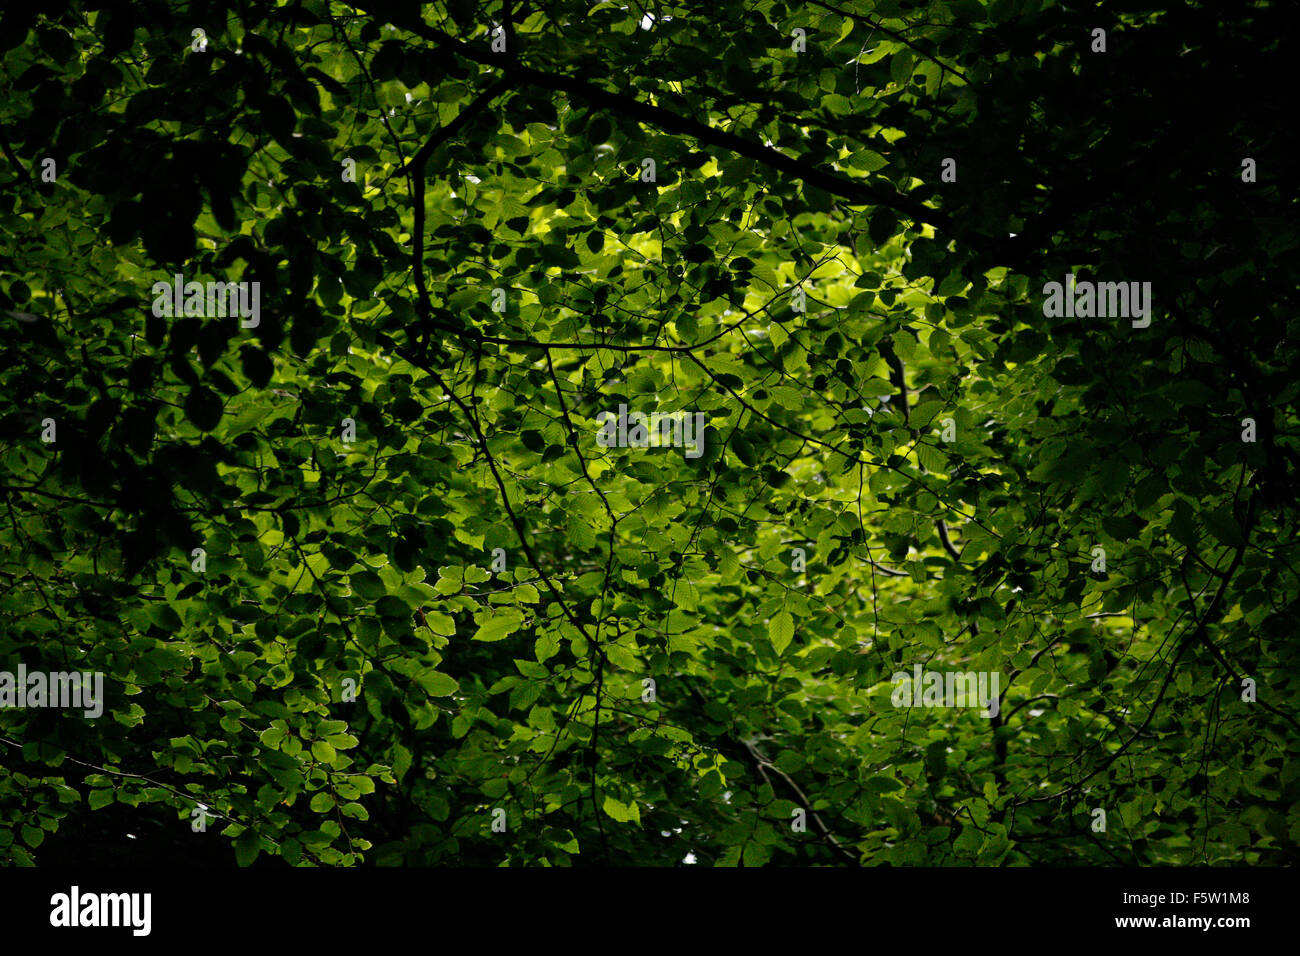 Green Leaves canopy in woods lit from above Stock Photo